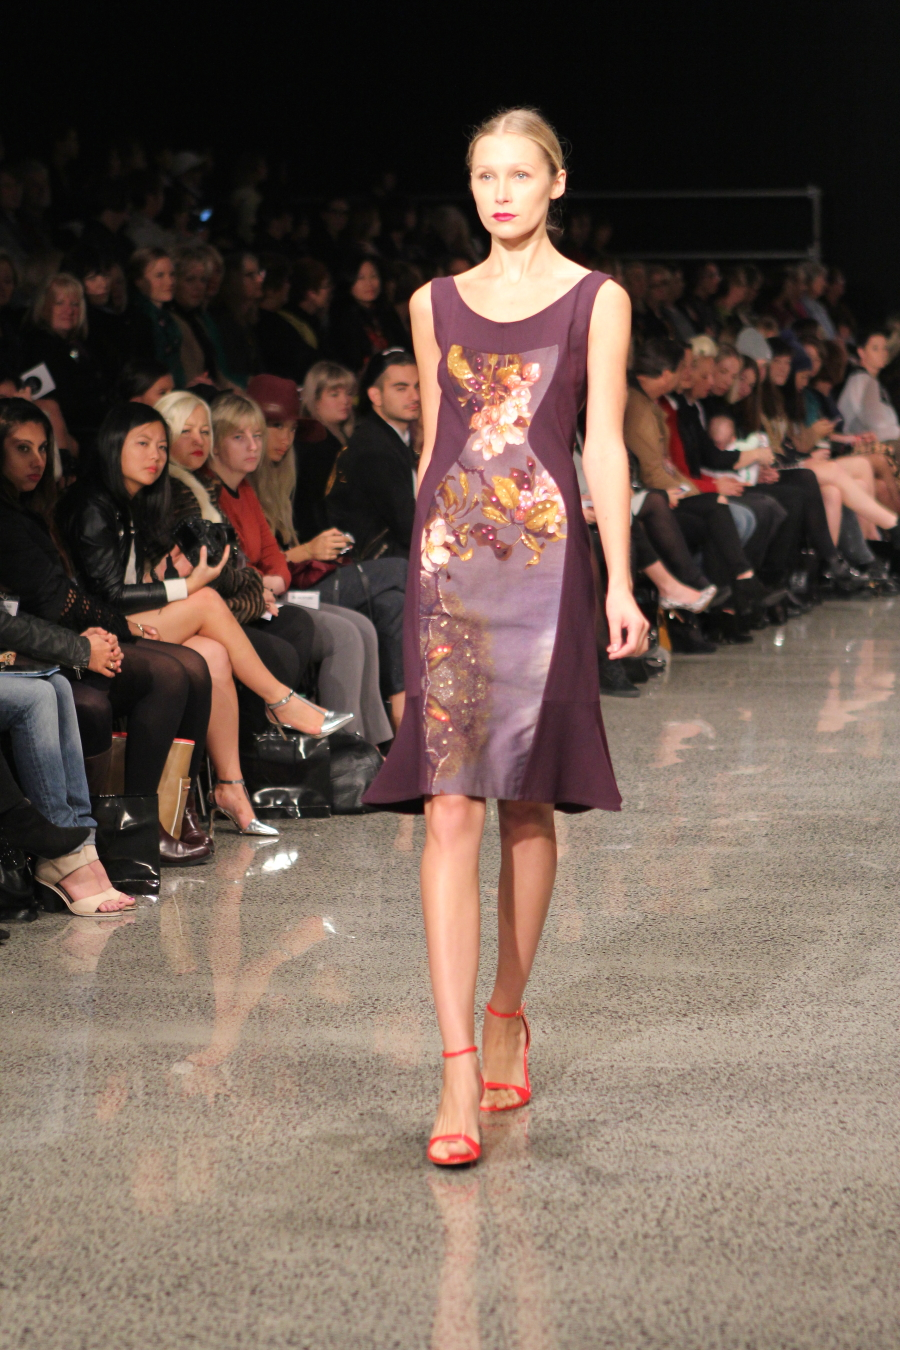 Sheryl May reign fall NZFW